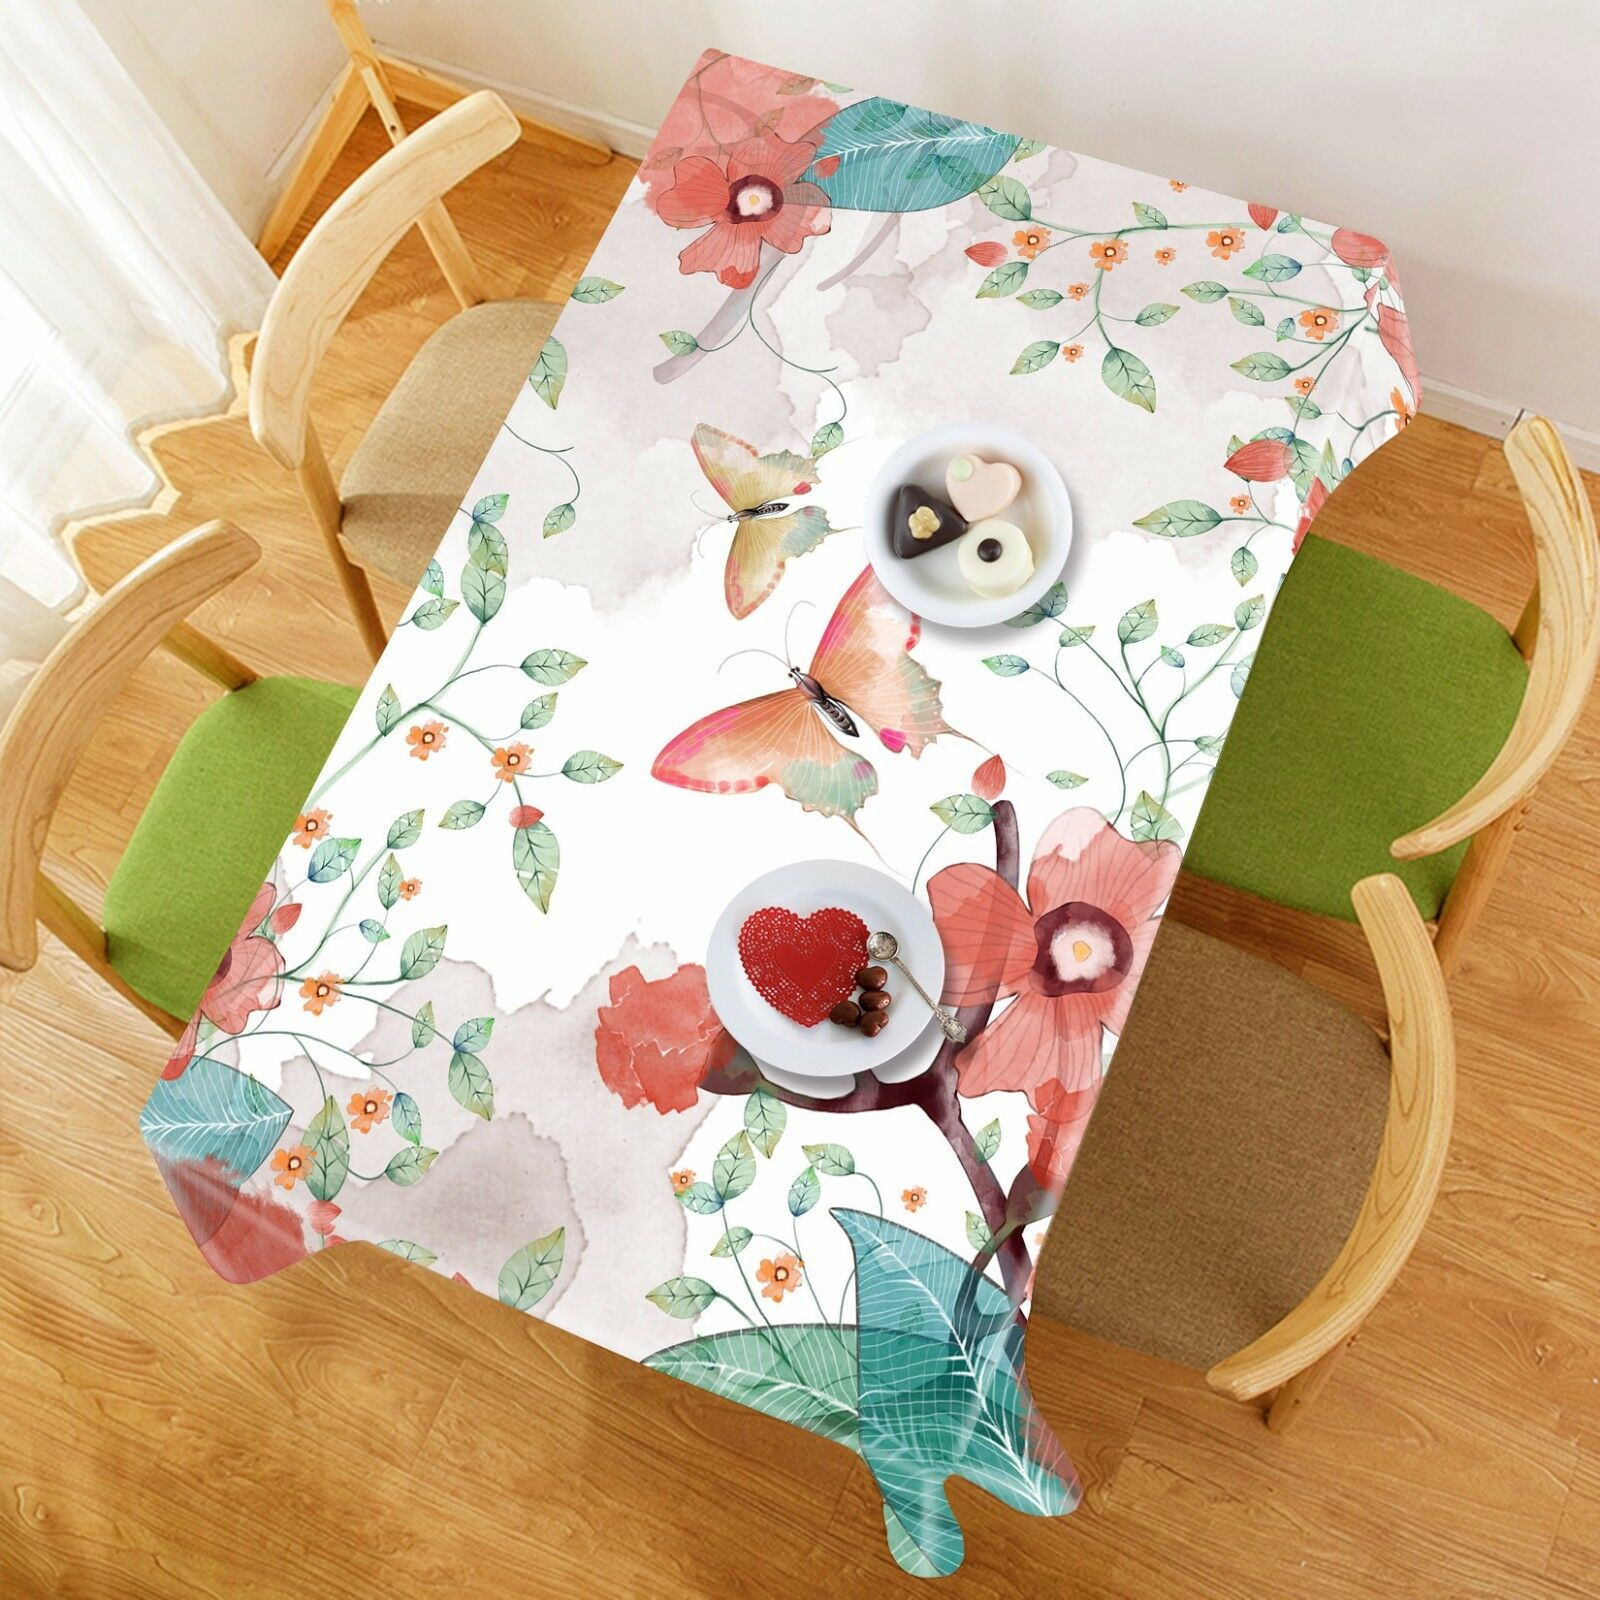 3D Butterflies 70 Tablecloth Table Cover Cloth Birthday Party Event AJ WALLPAPER